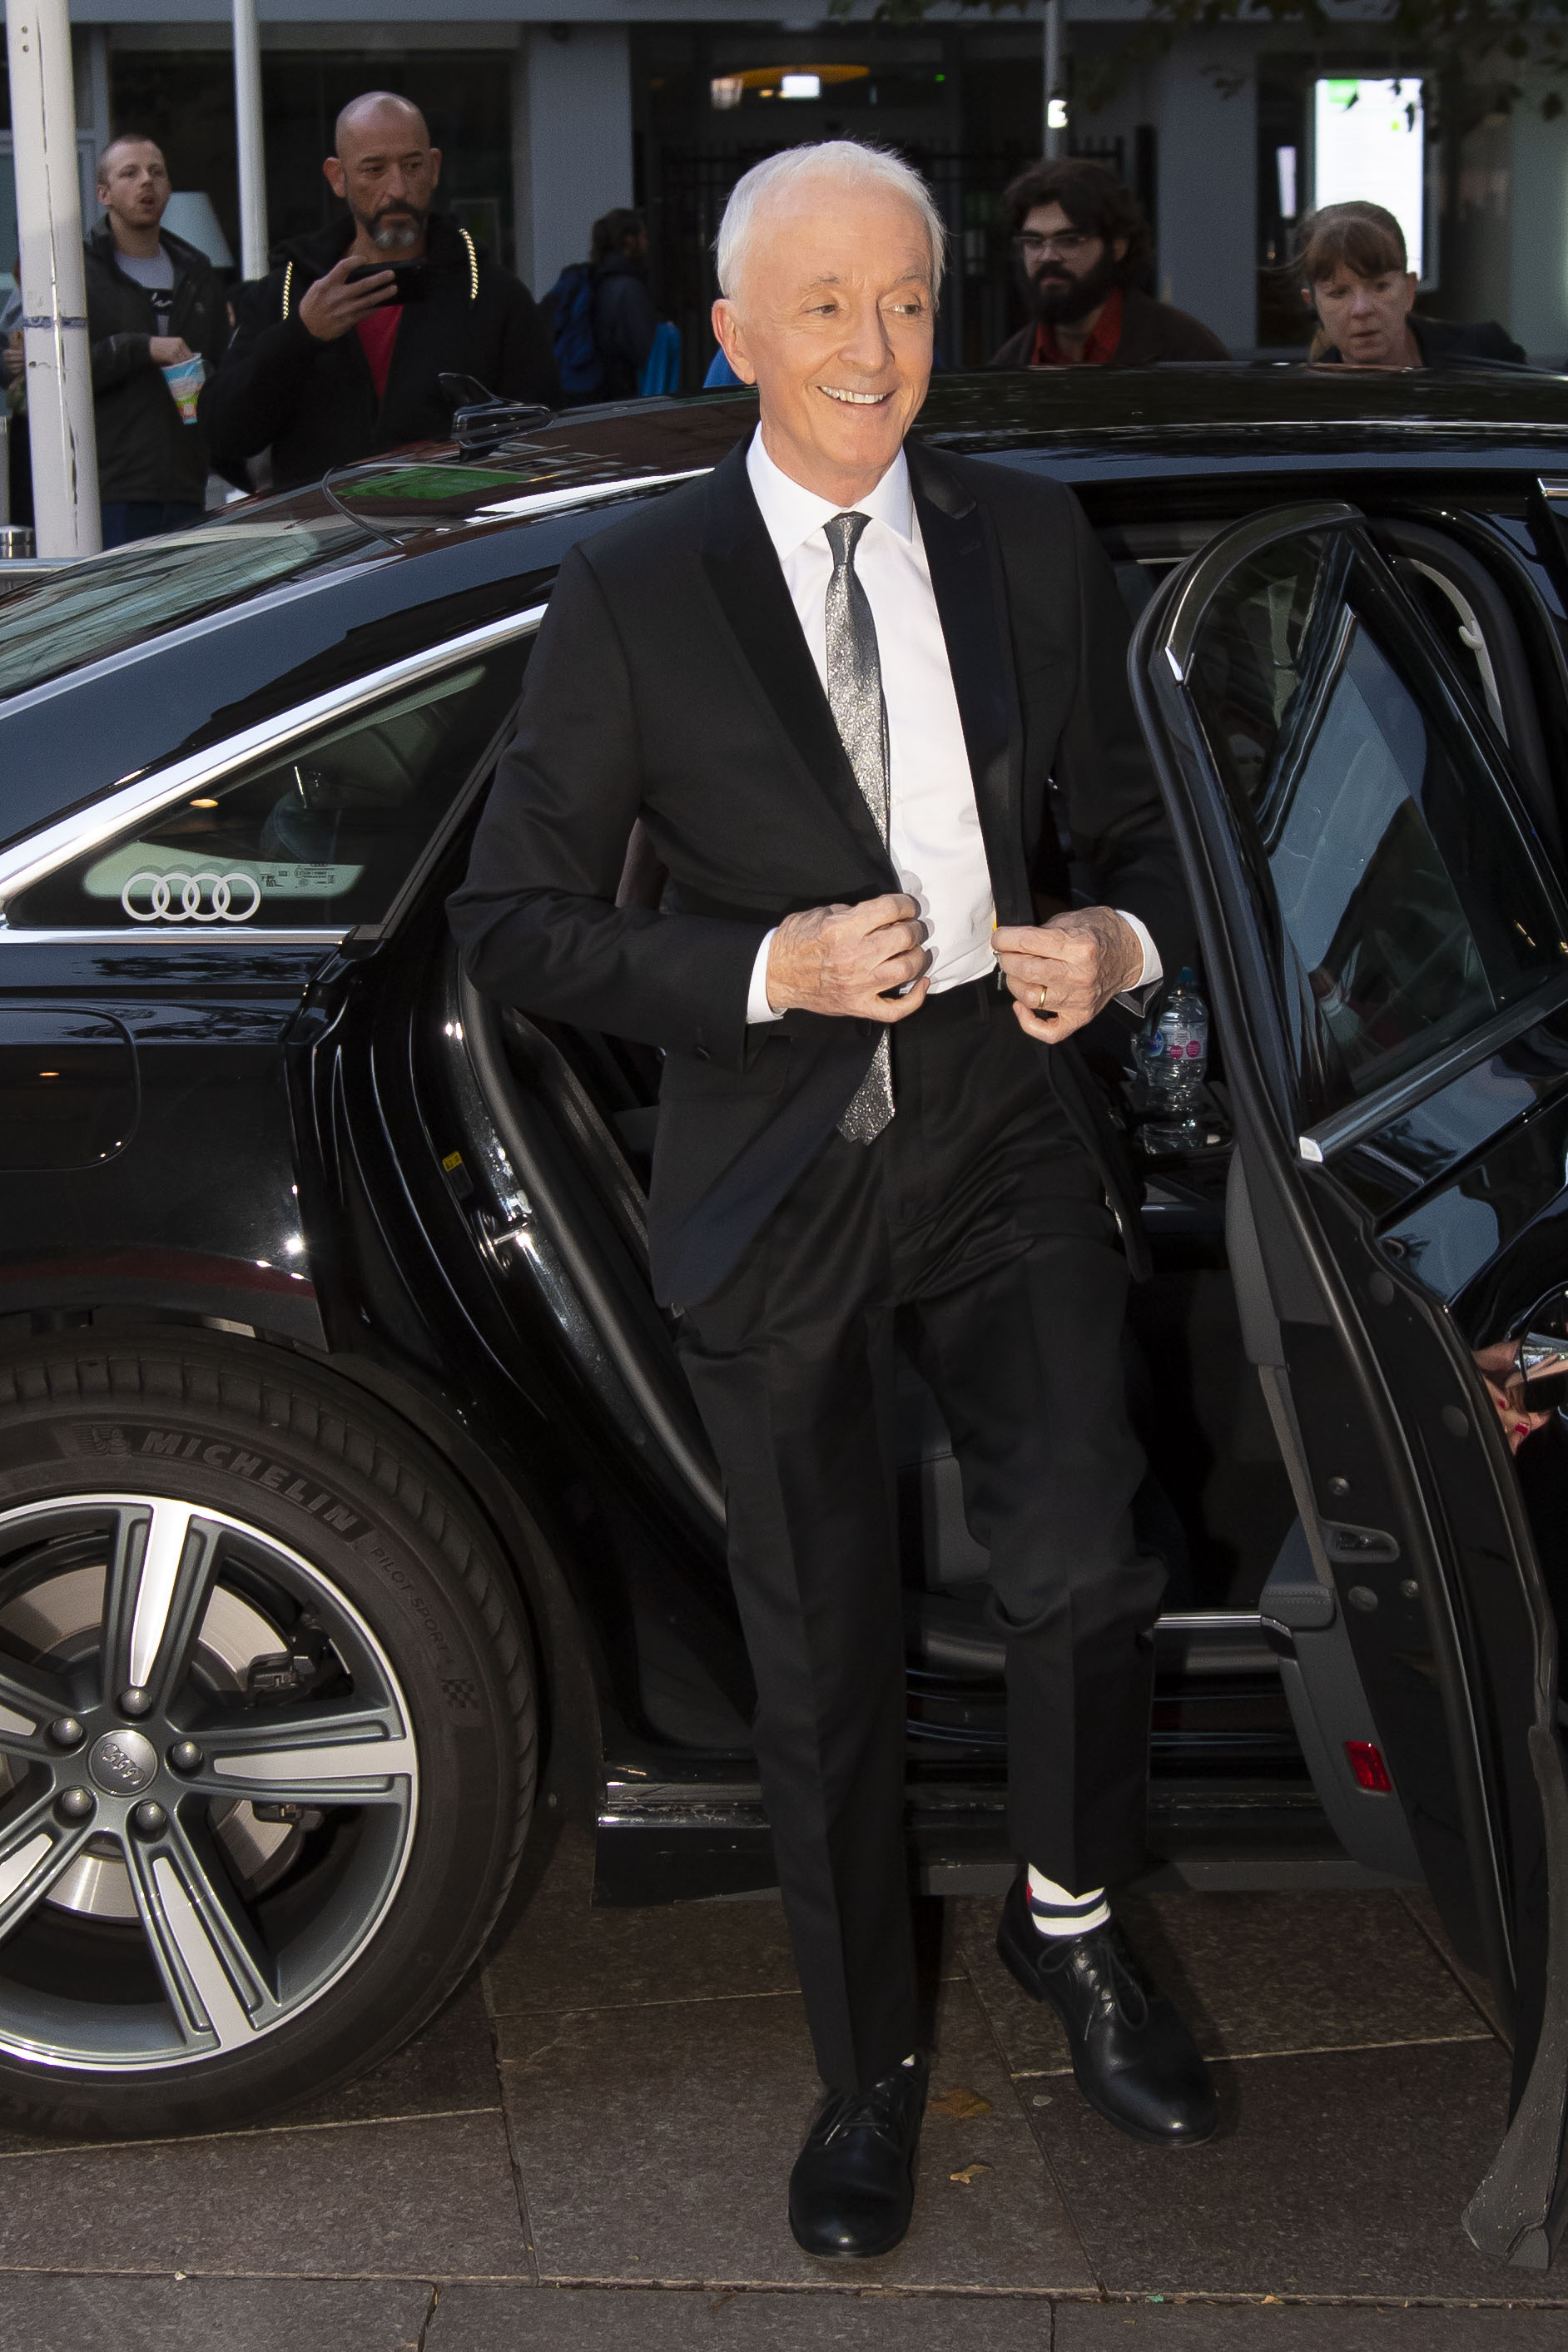 Anthony-Daniels-arrives-in-an-Audi-at-the-British-Academy-Cymru-Awards-2019-Cardiff-Sunday-13-October-2019